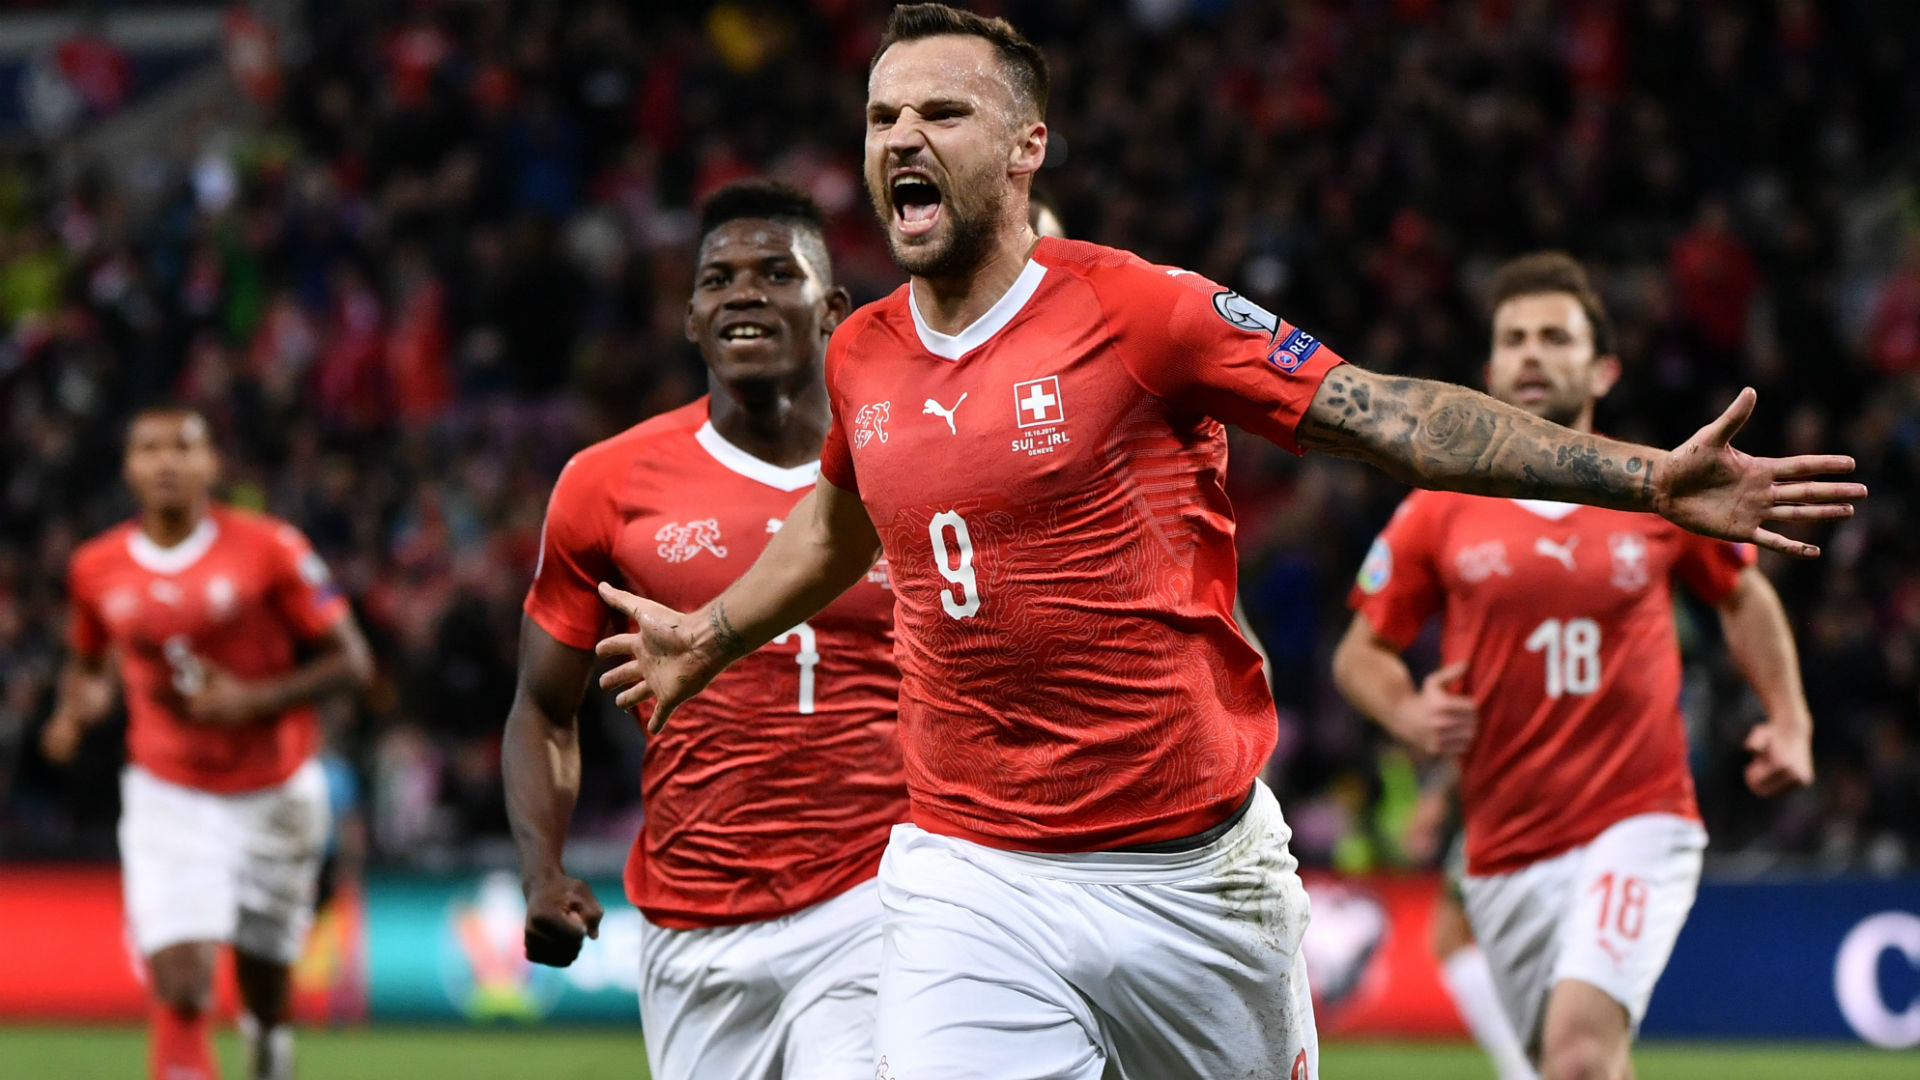 Switzerland 2-0 Republic of Ireland: Swiss dent Irish Euro 2020 hopes